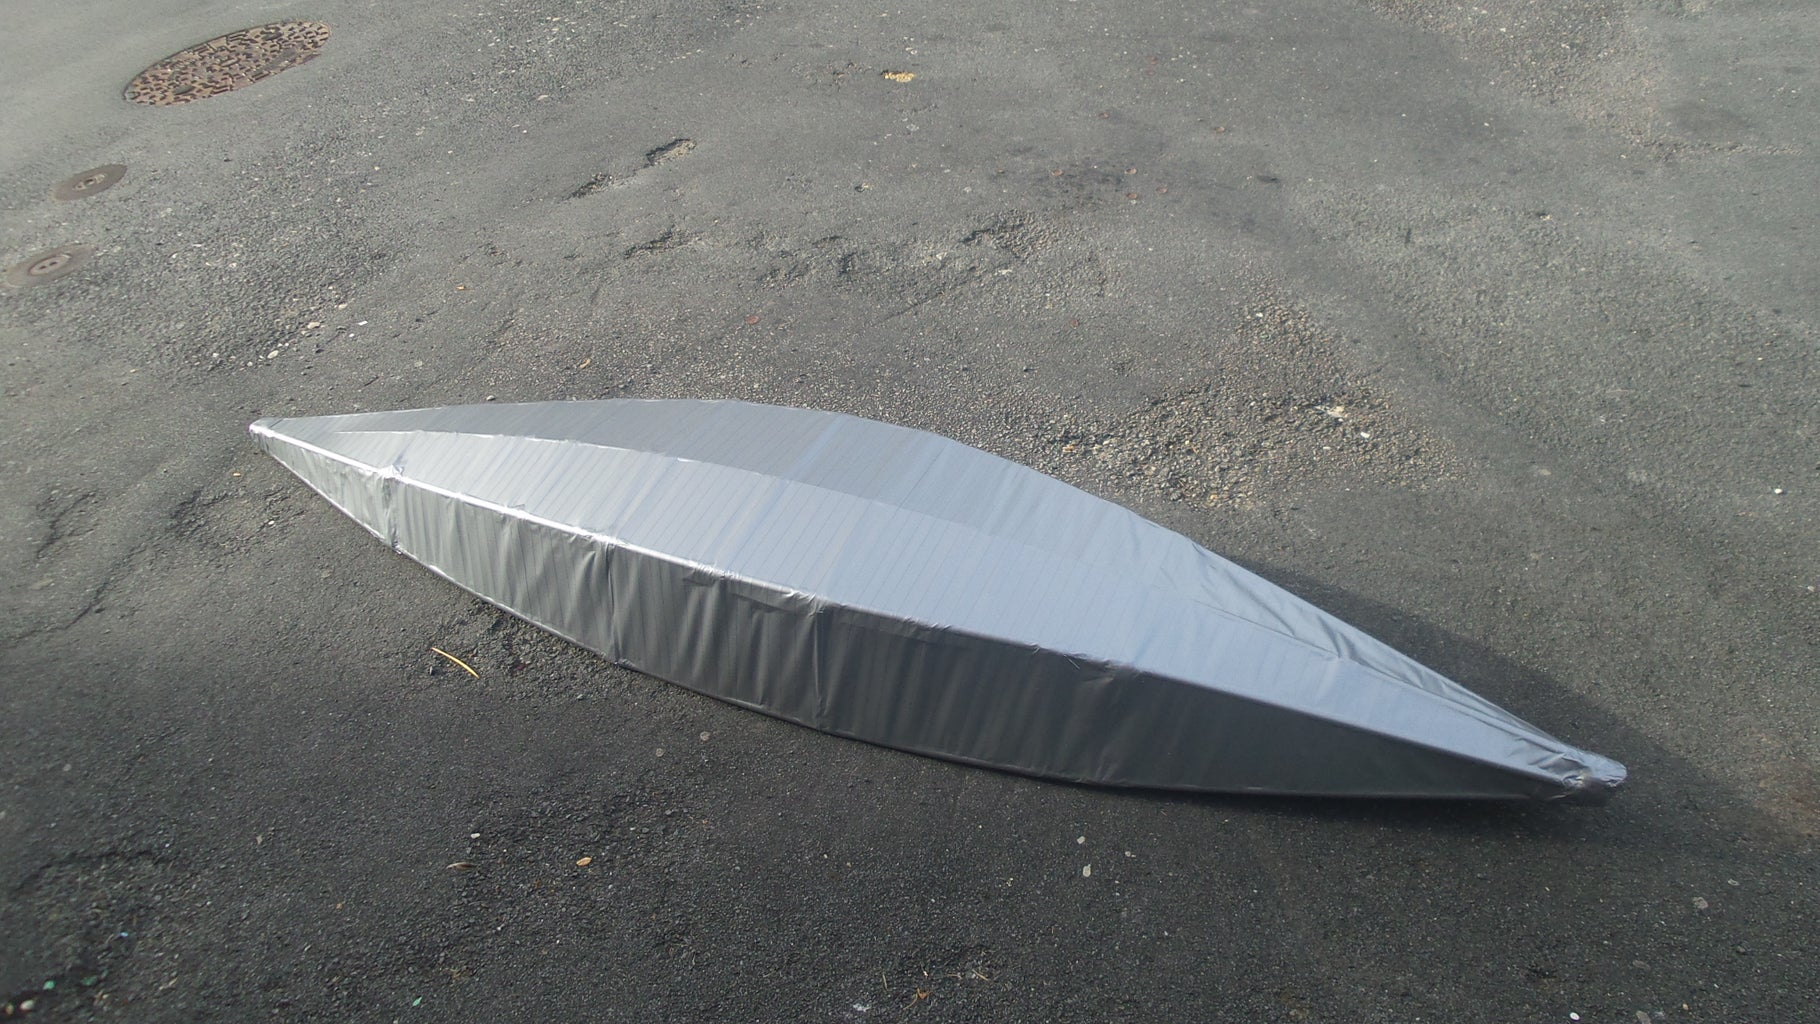 Coating in Duct Tape